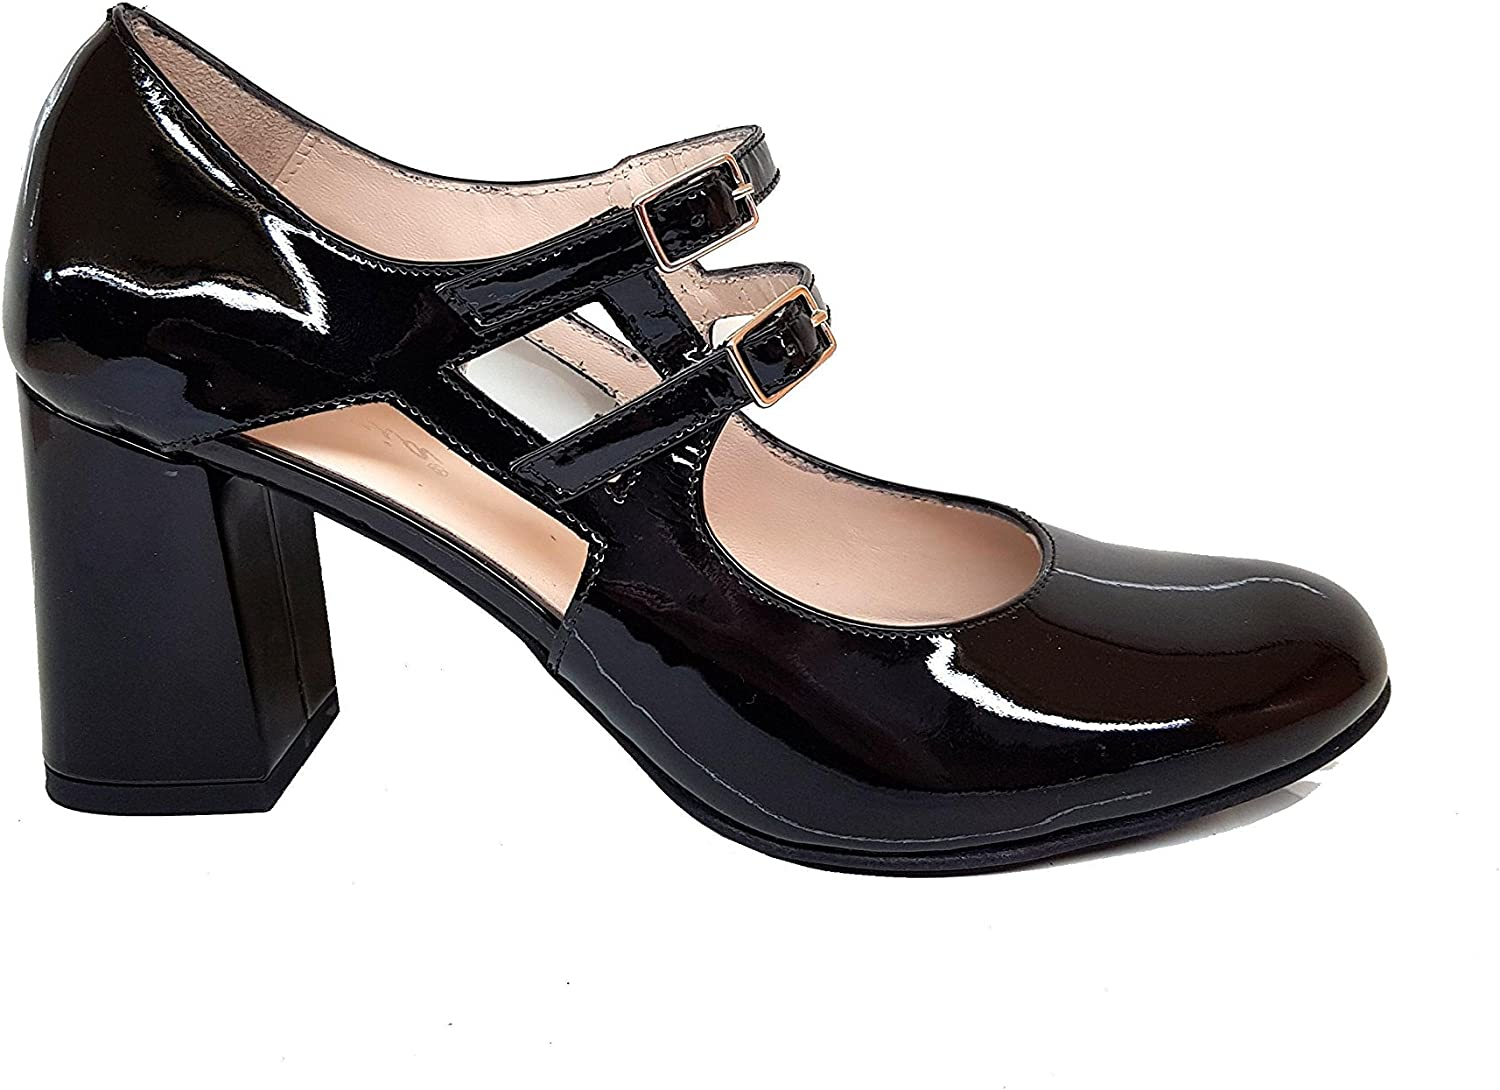 GENNIA VRADA. - Women Closed Rounded Toe Stylish Mary Jane Leather Pumps with Asimetric Block Heel 7 cm with Buckle Closure